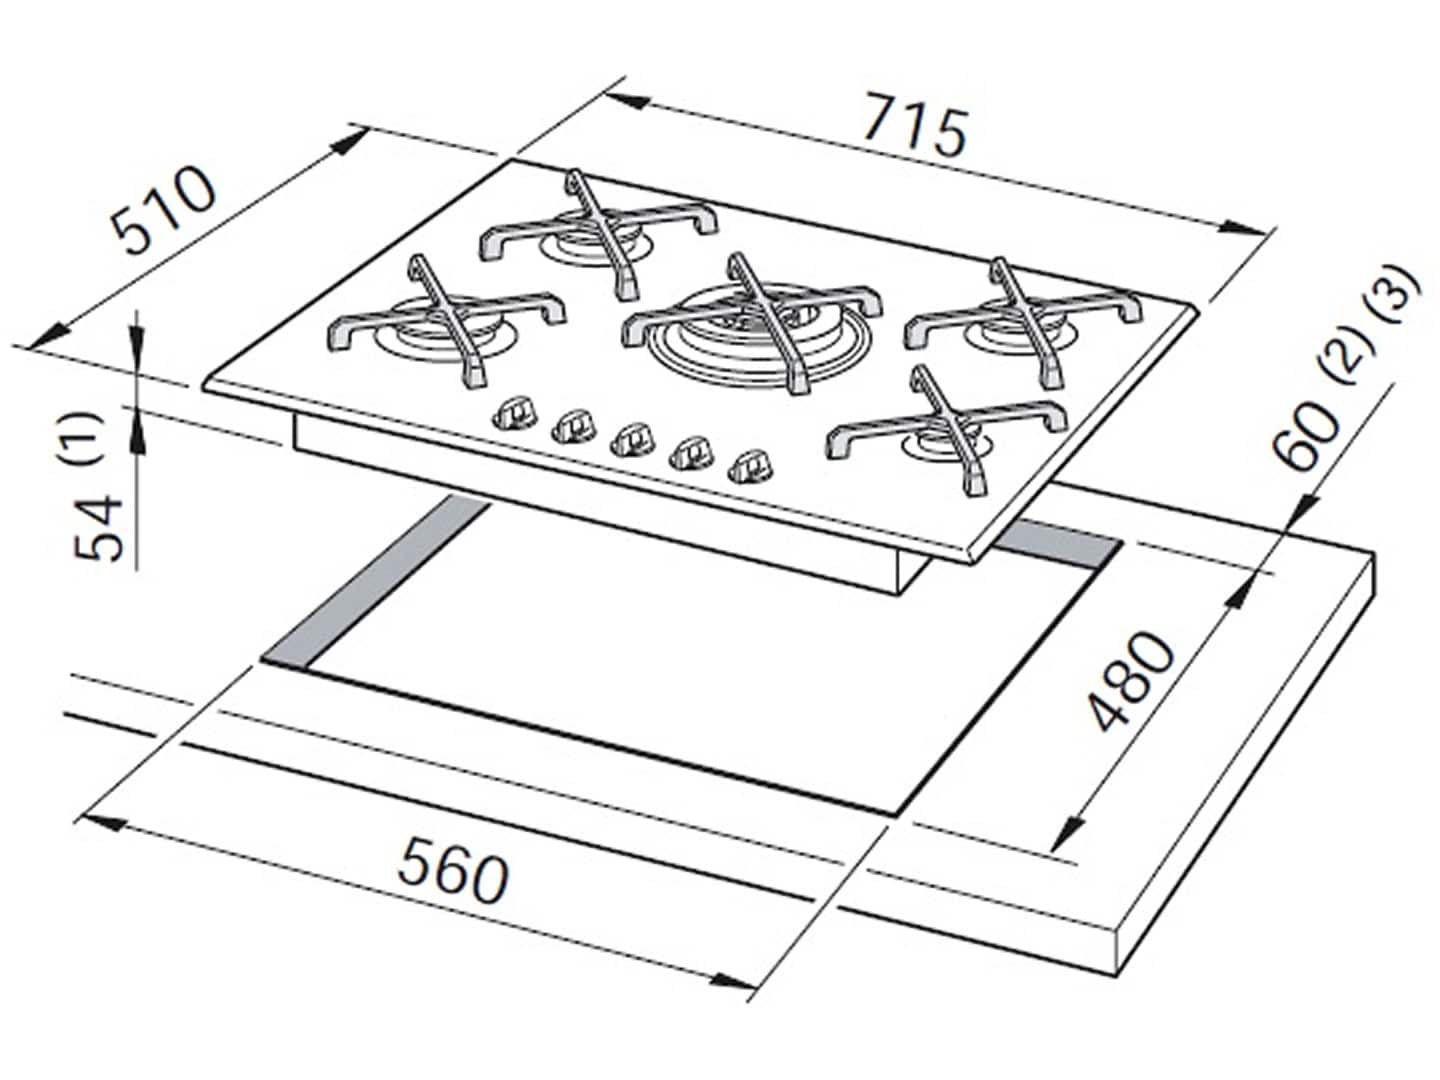 70cm 5 Burner Black Glass Gas Cooktop DEGH70BGX1 Installation Diagram